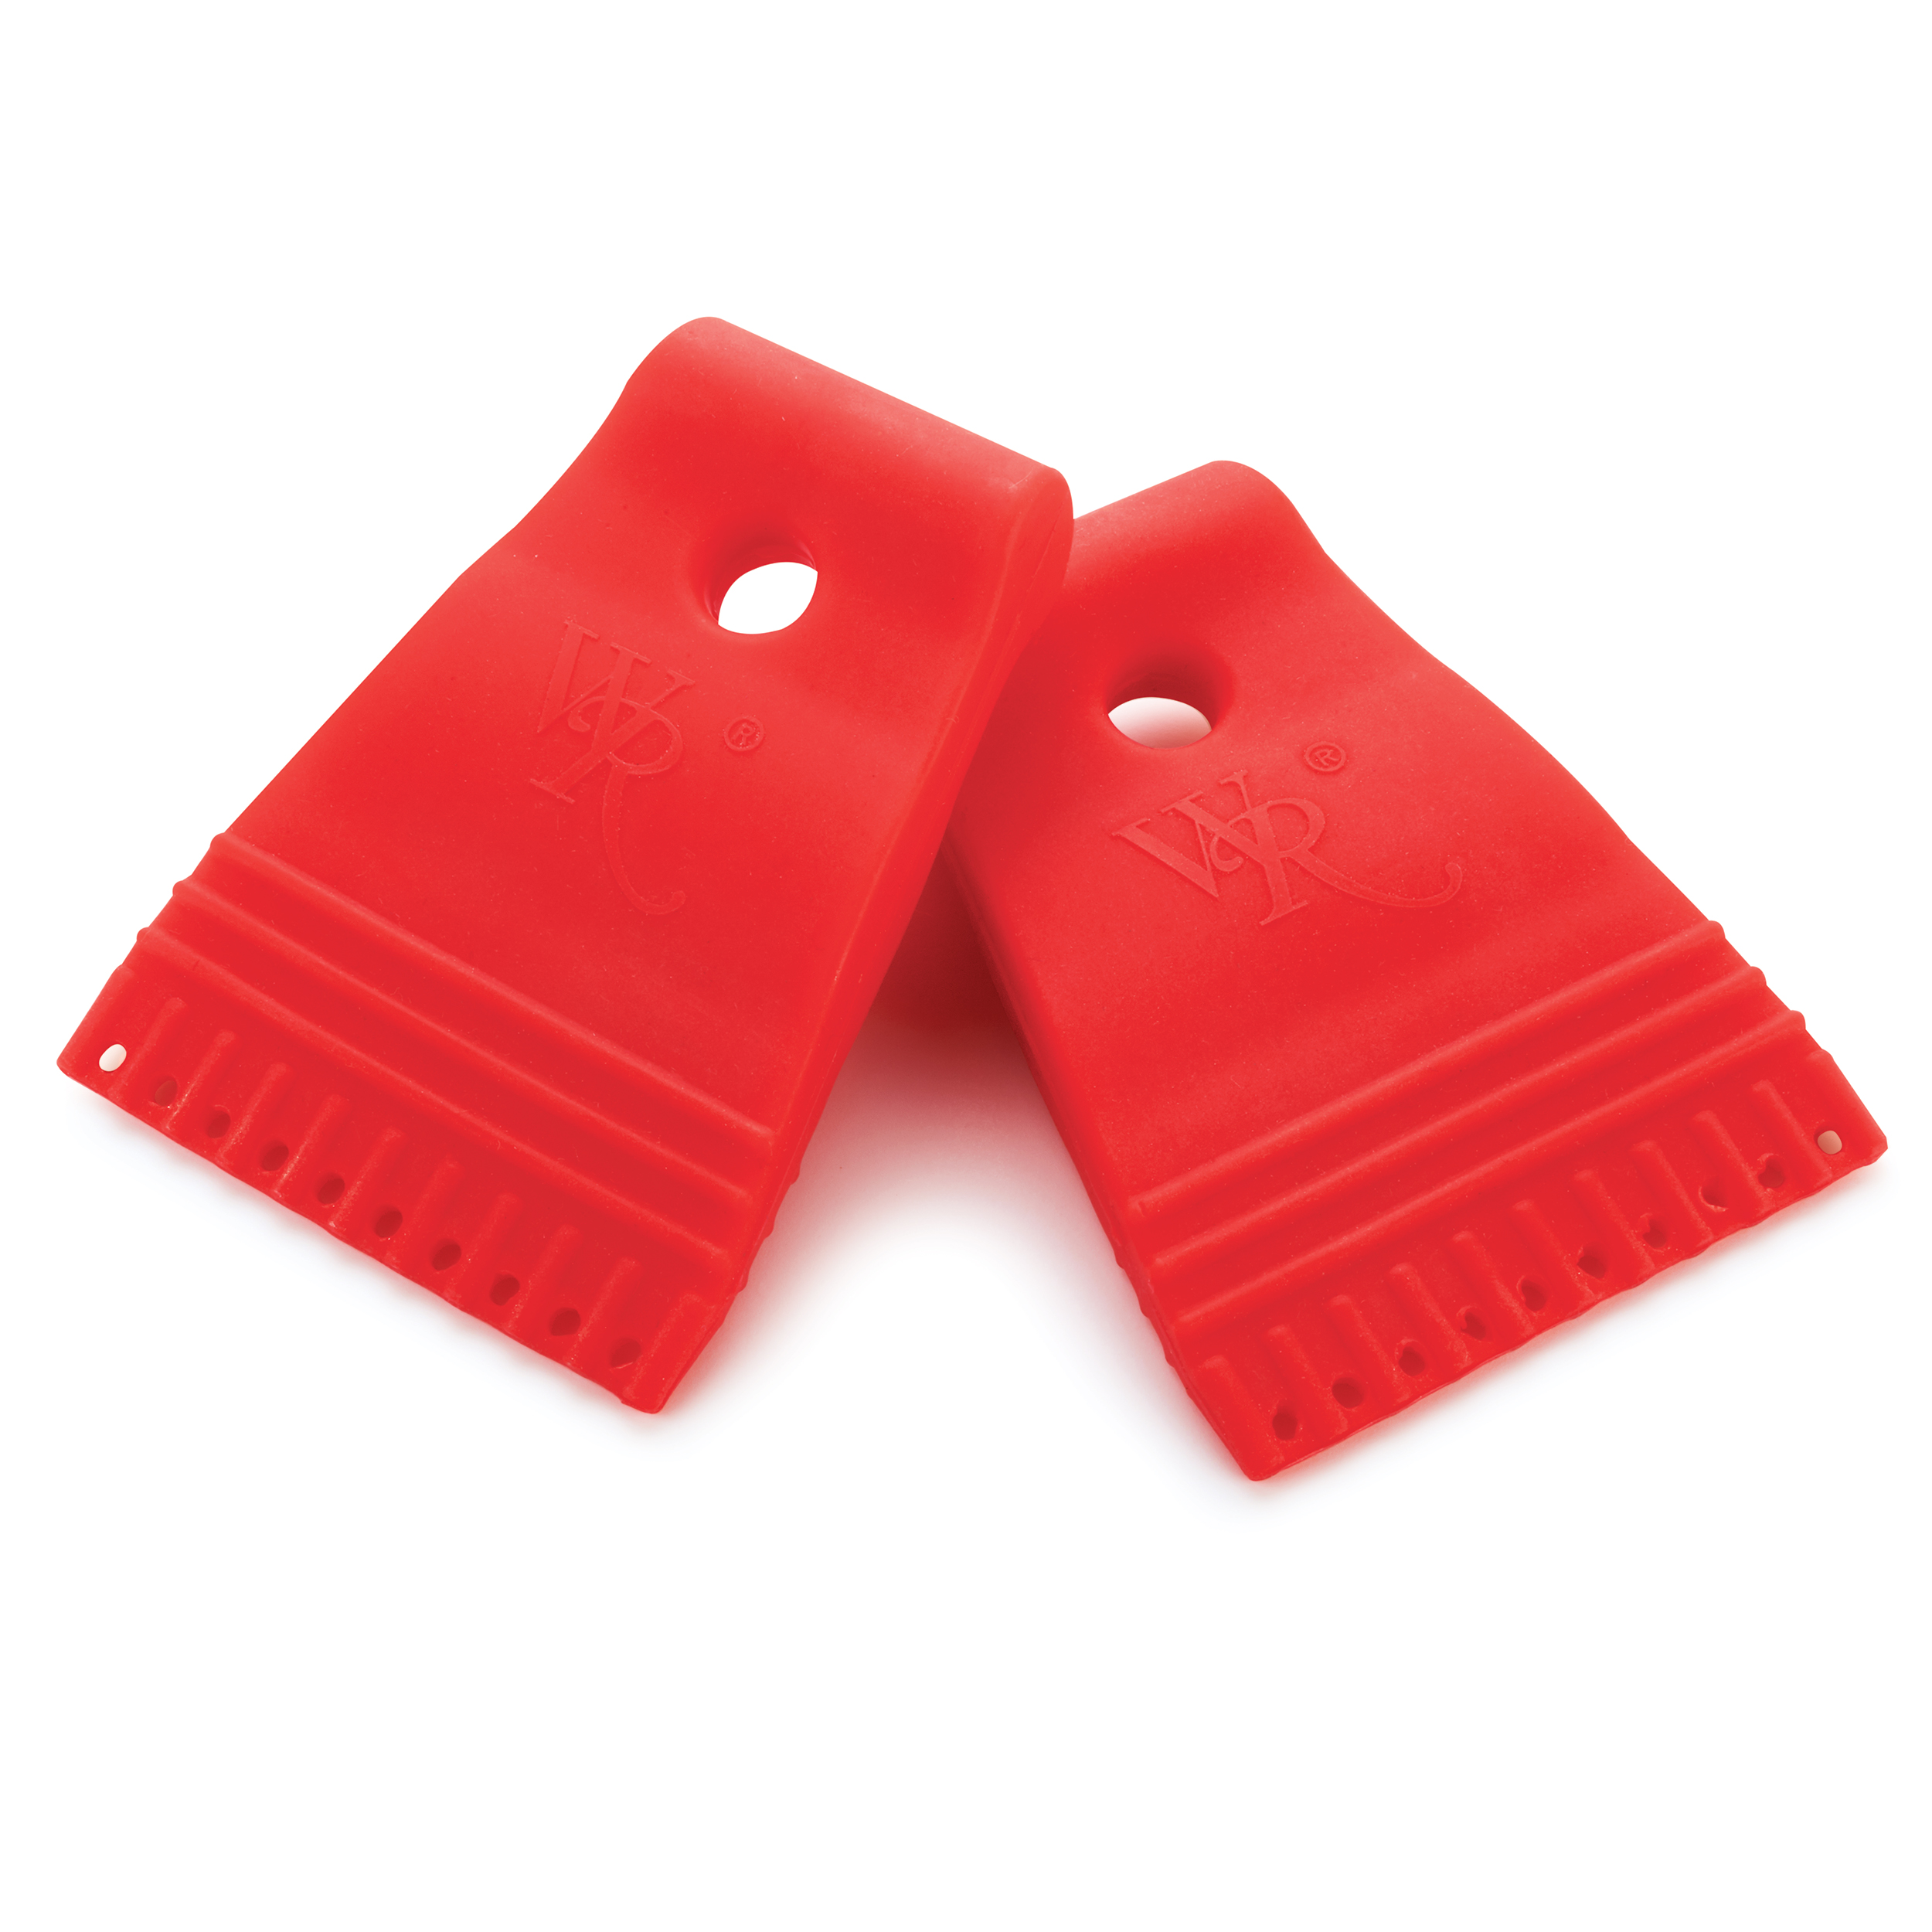 Silicone Glue Spreaders